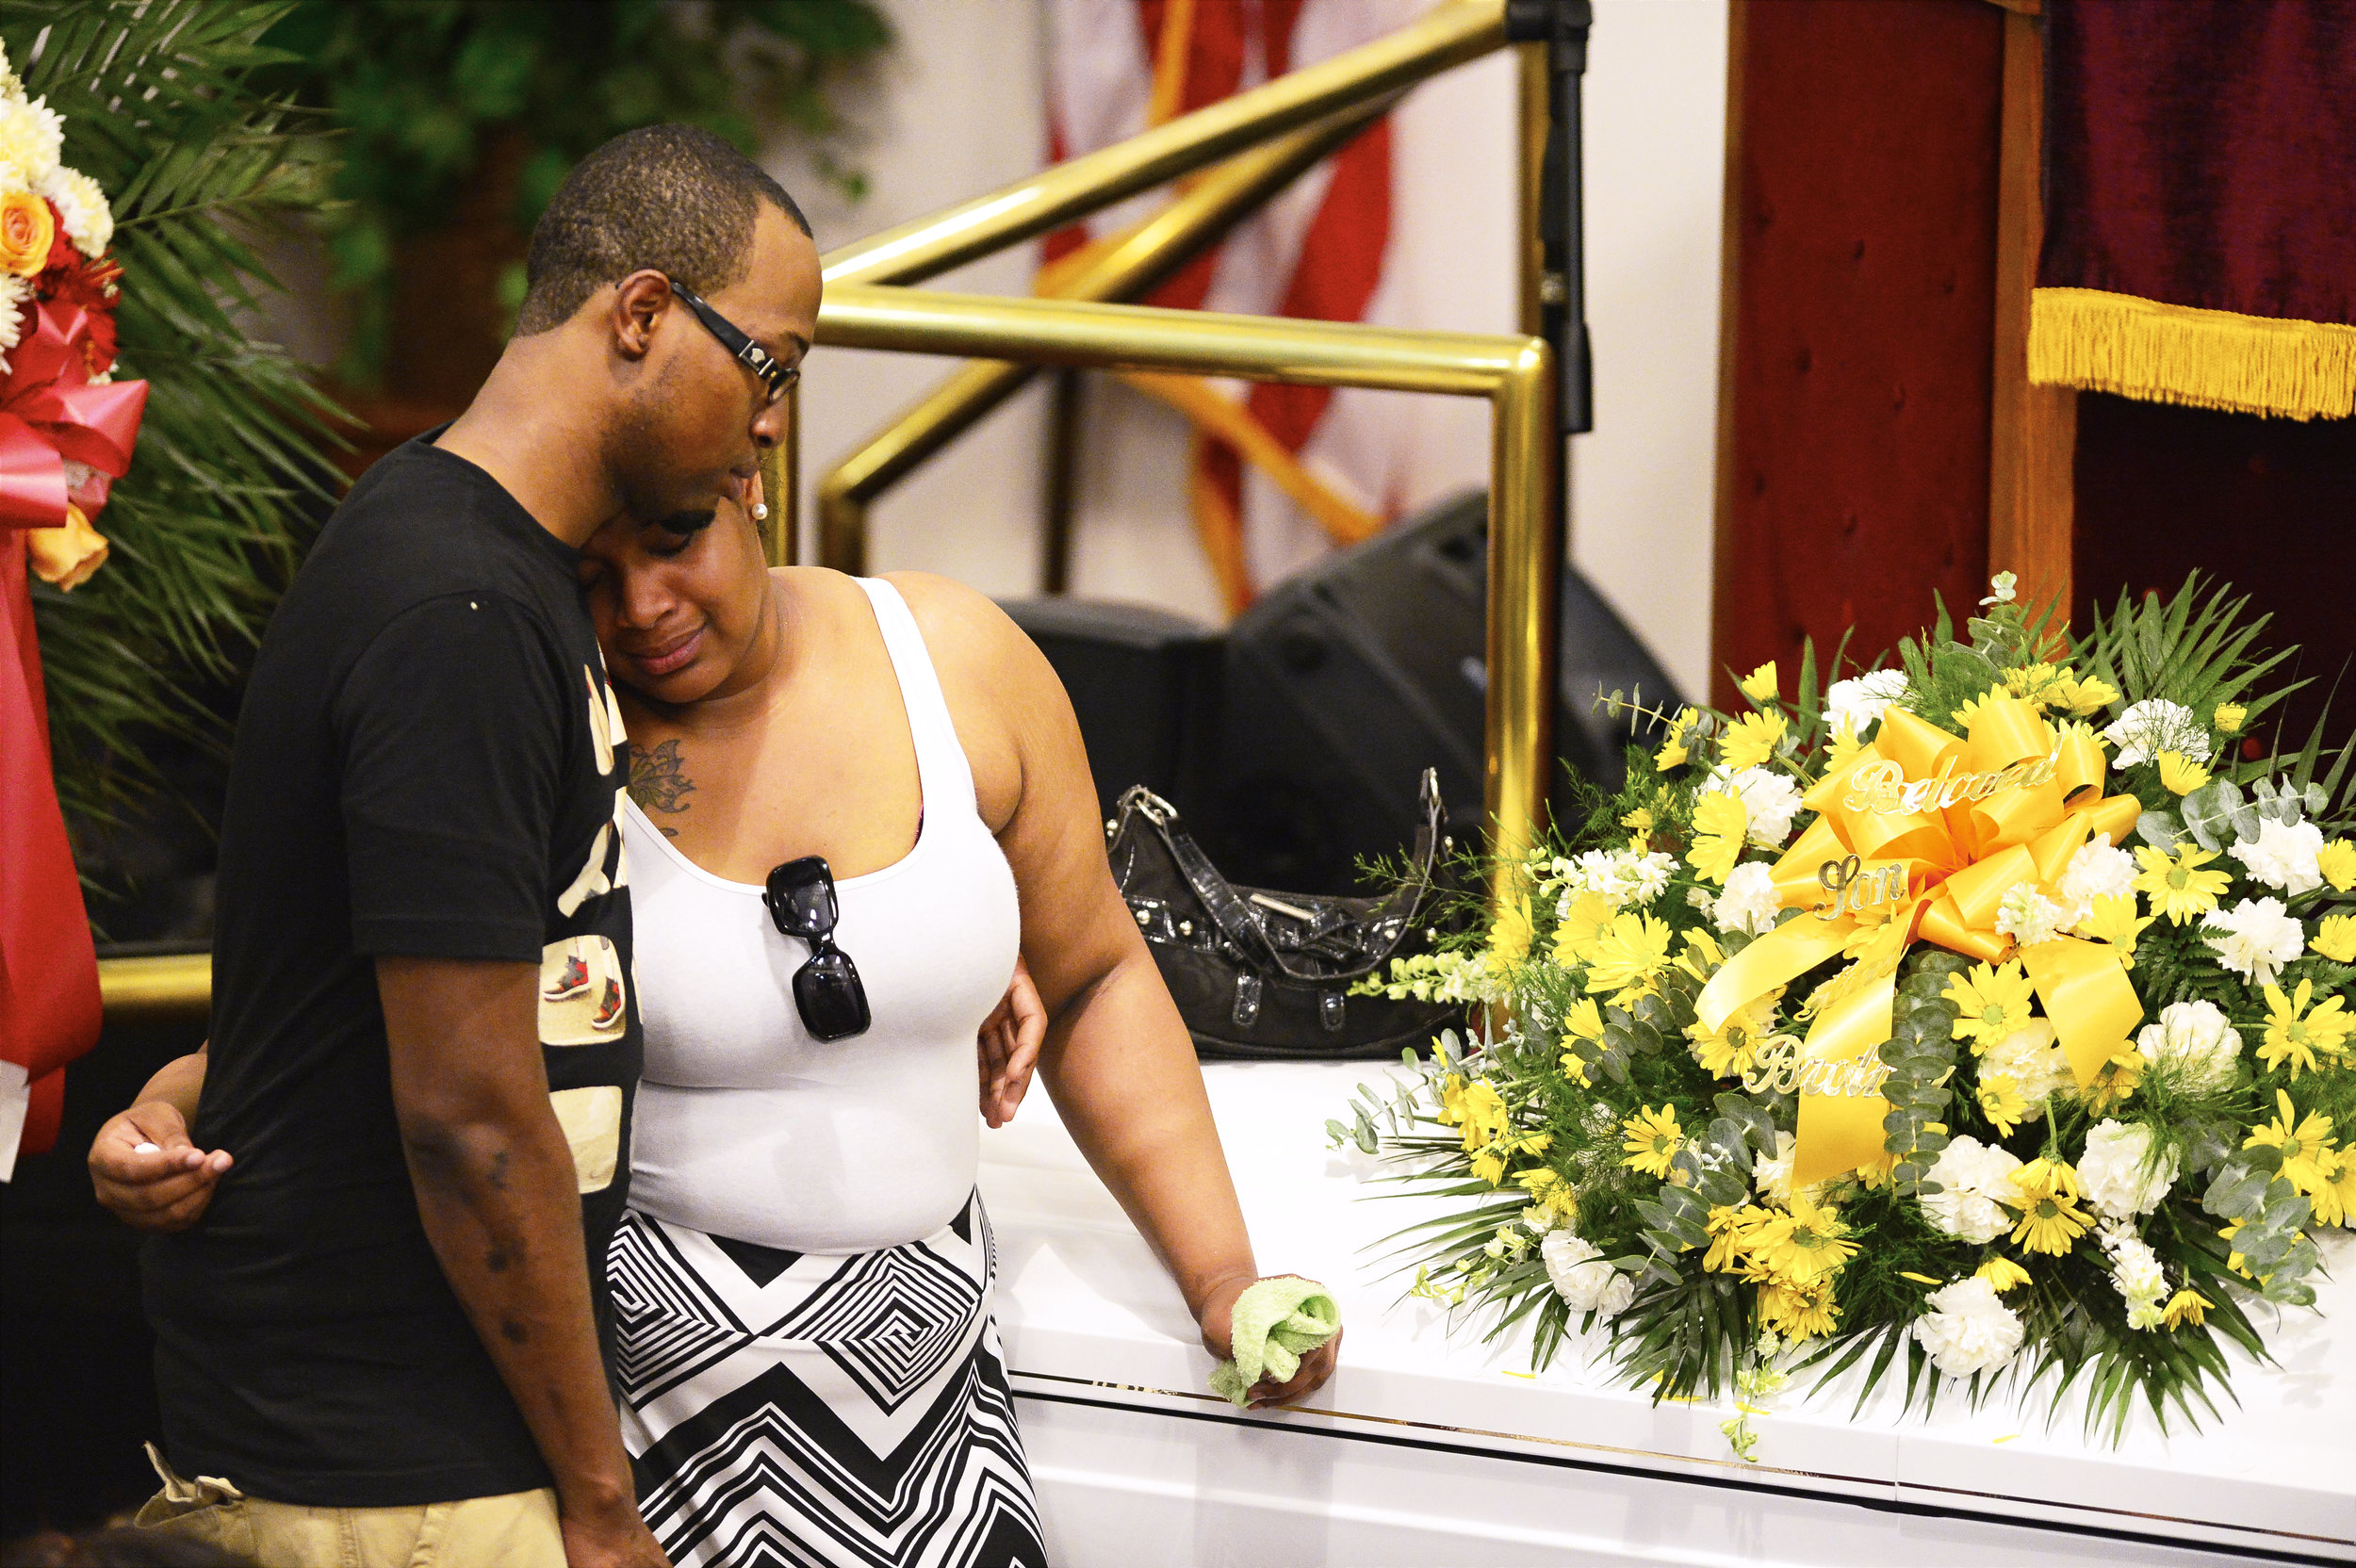 Emerald Garner stands next to the coffin of her father, Eric Garner, during his funeral at Bethel Baptist Church on Wednesday, July 23, 2014, in the Brooklyn borough of New York City.